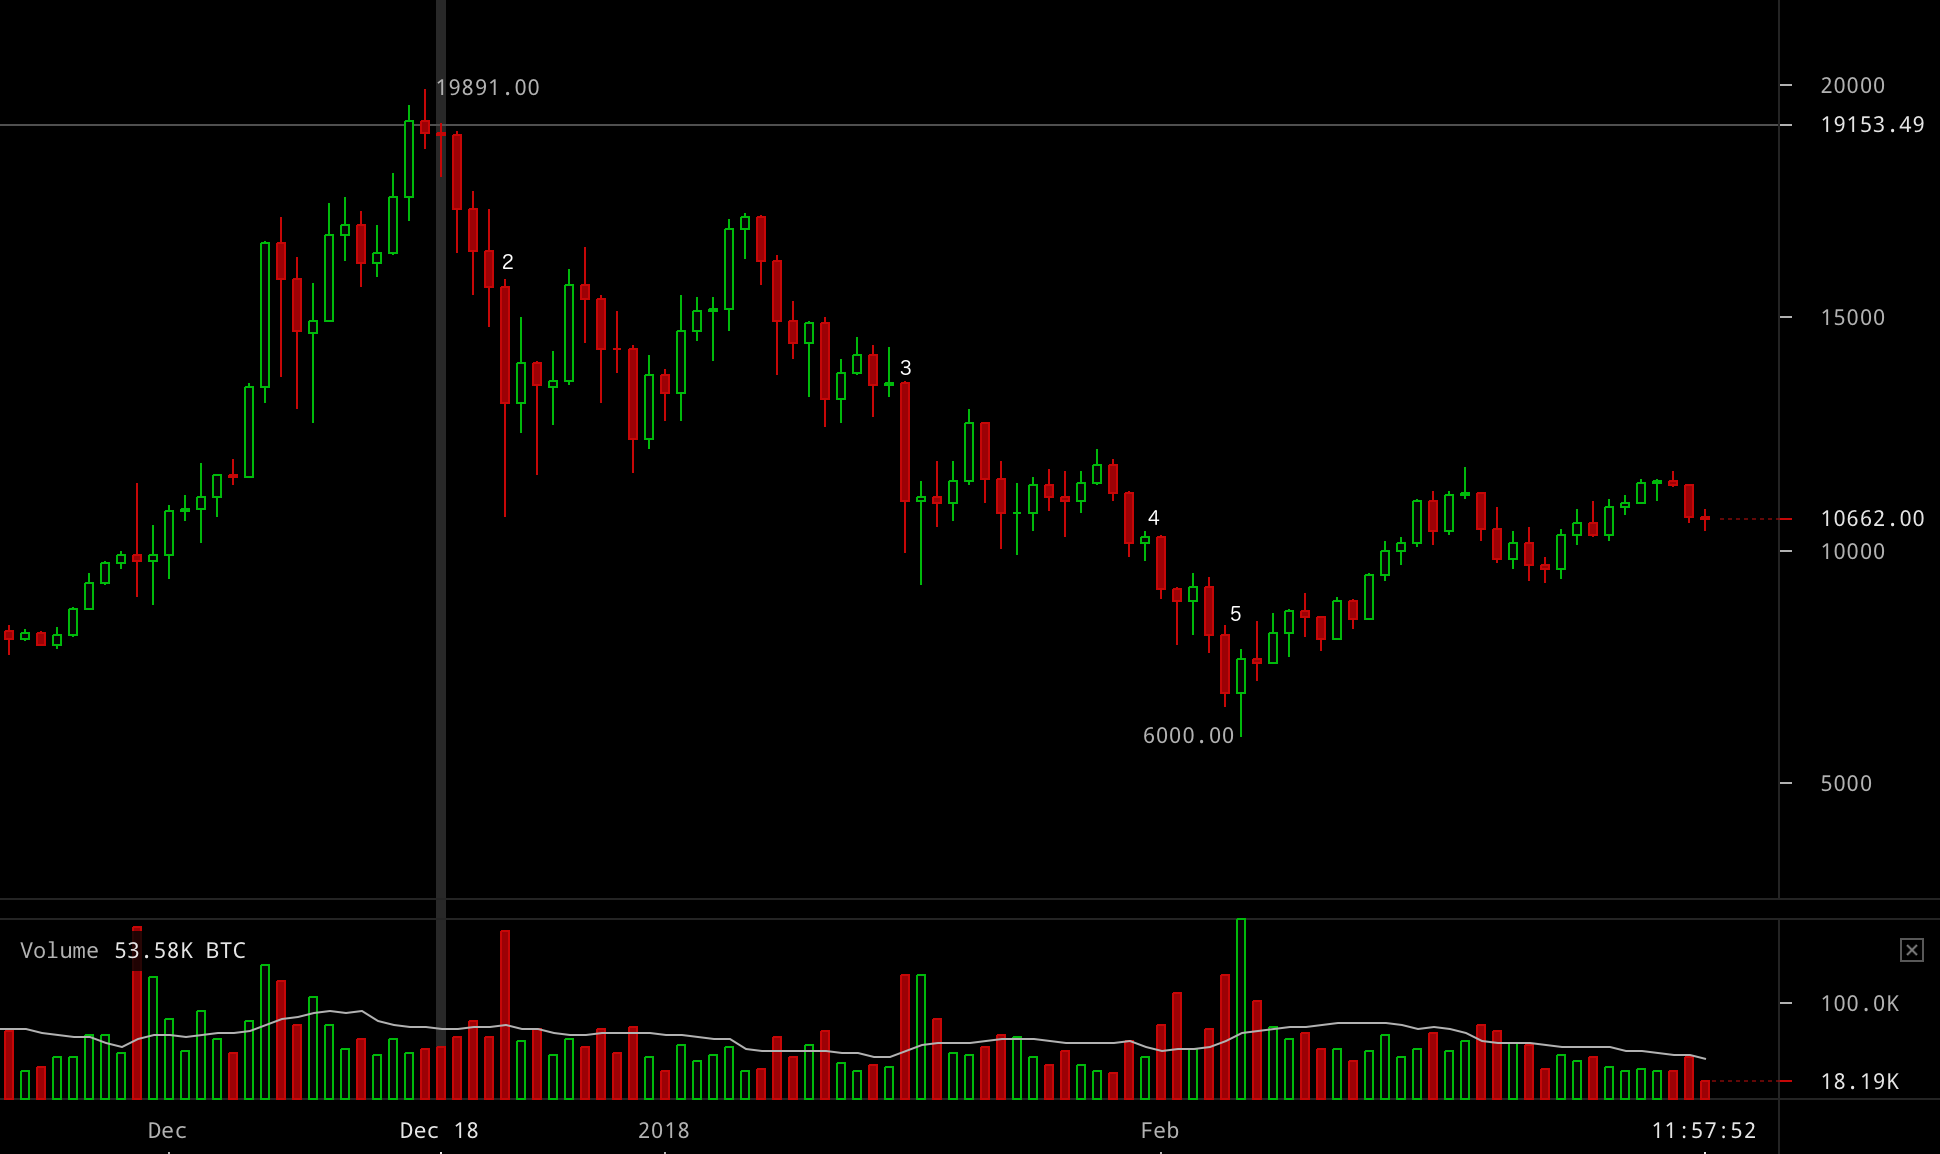 bitcoin-price-march-7-18-1.png